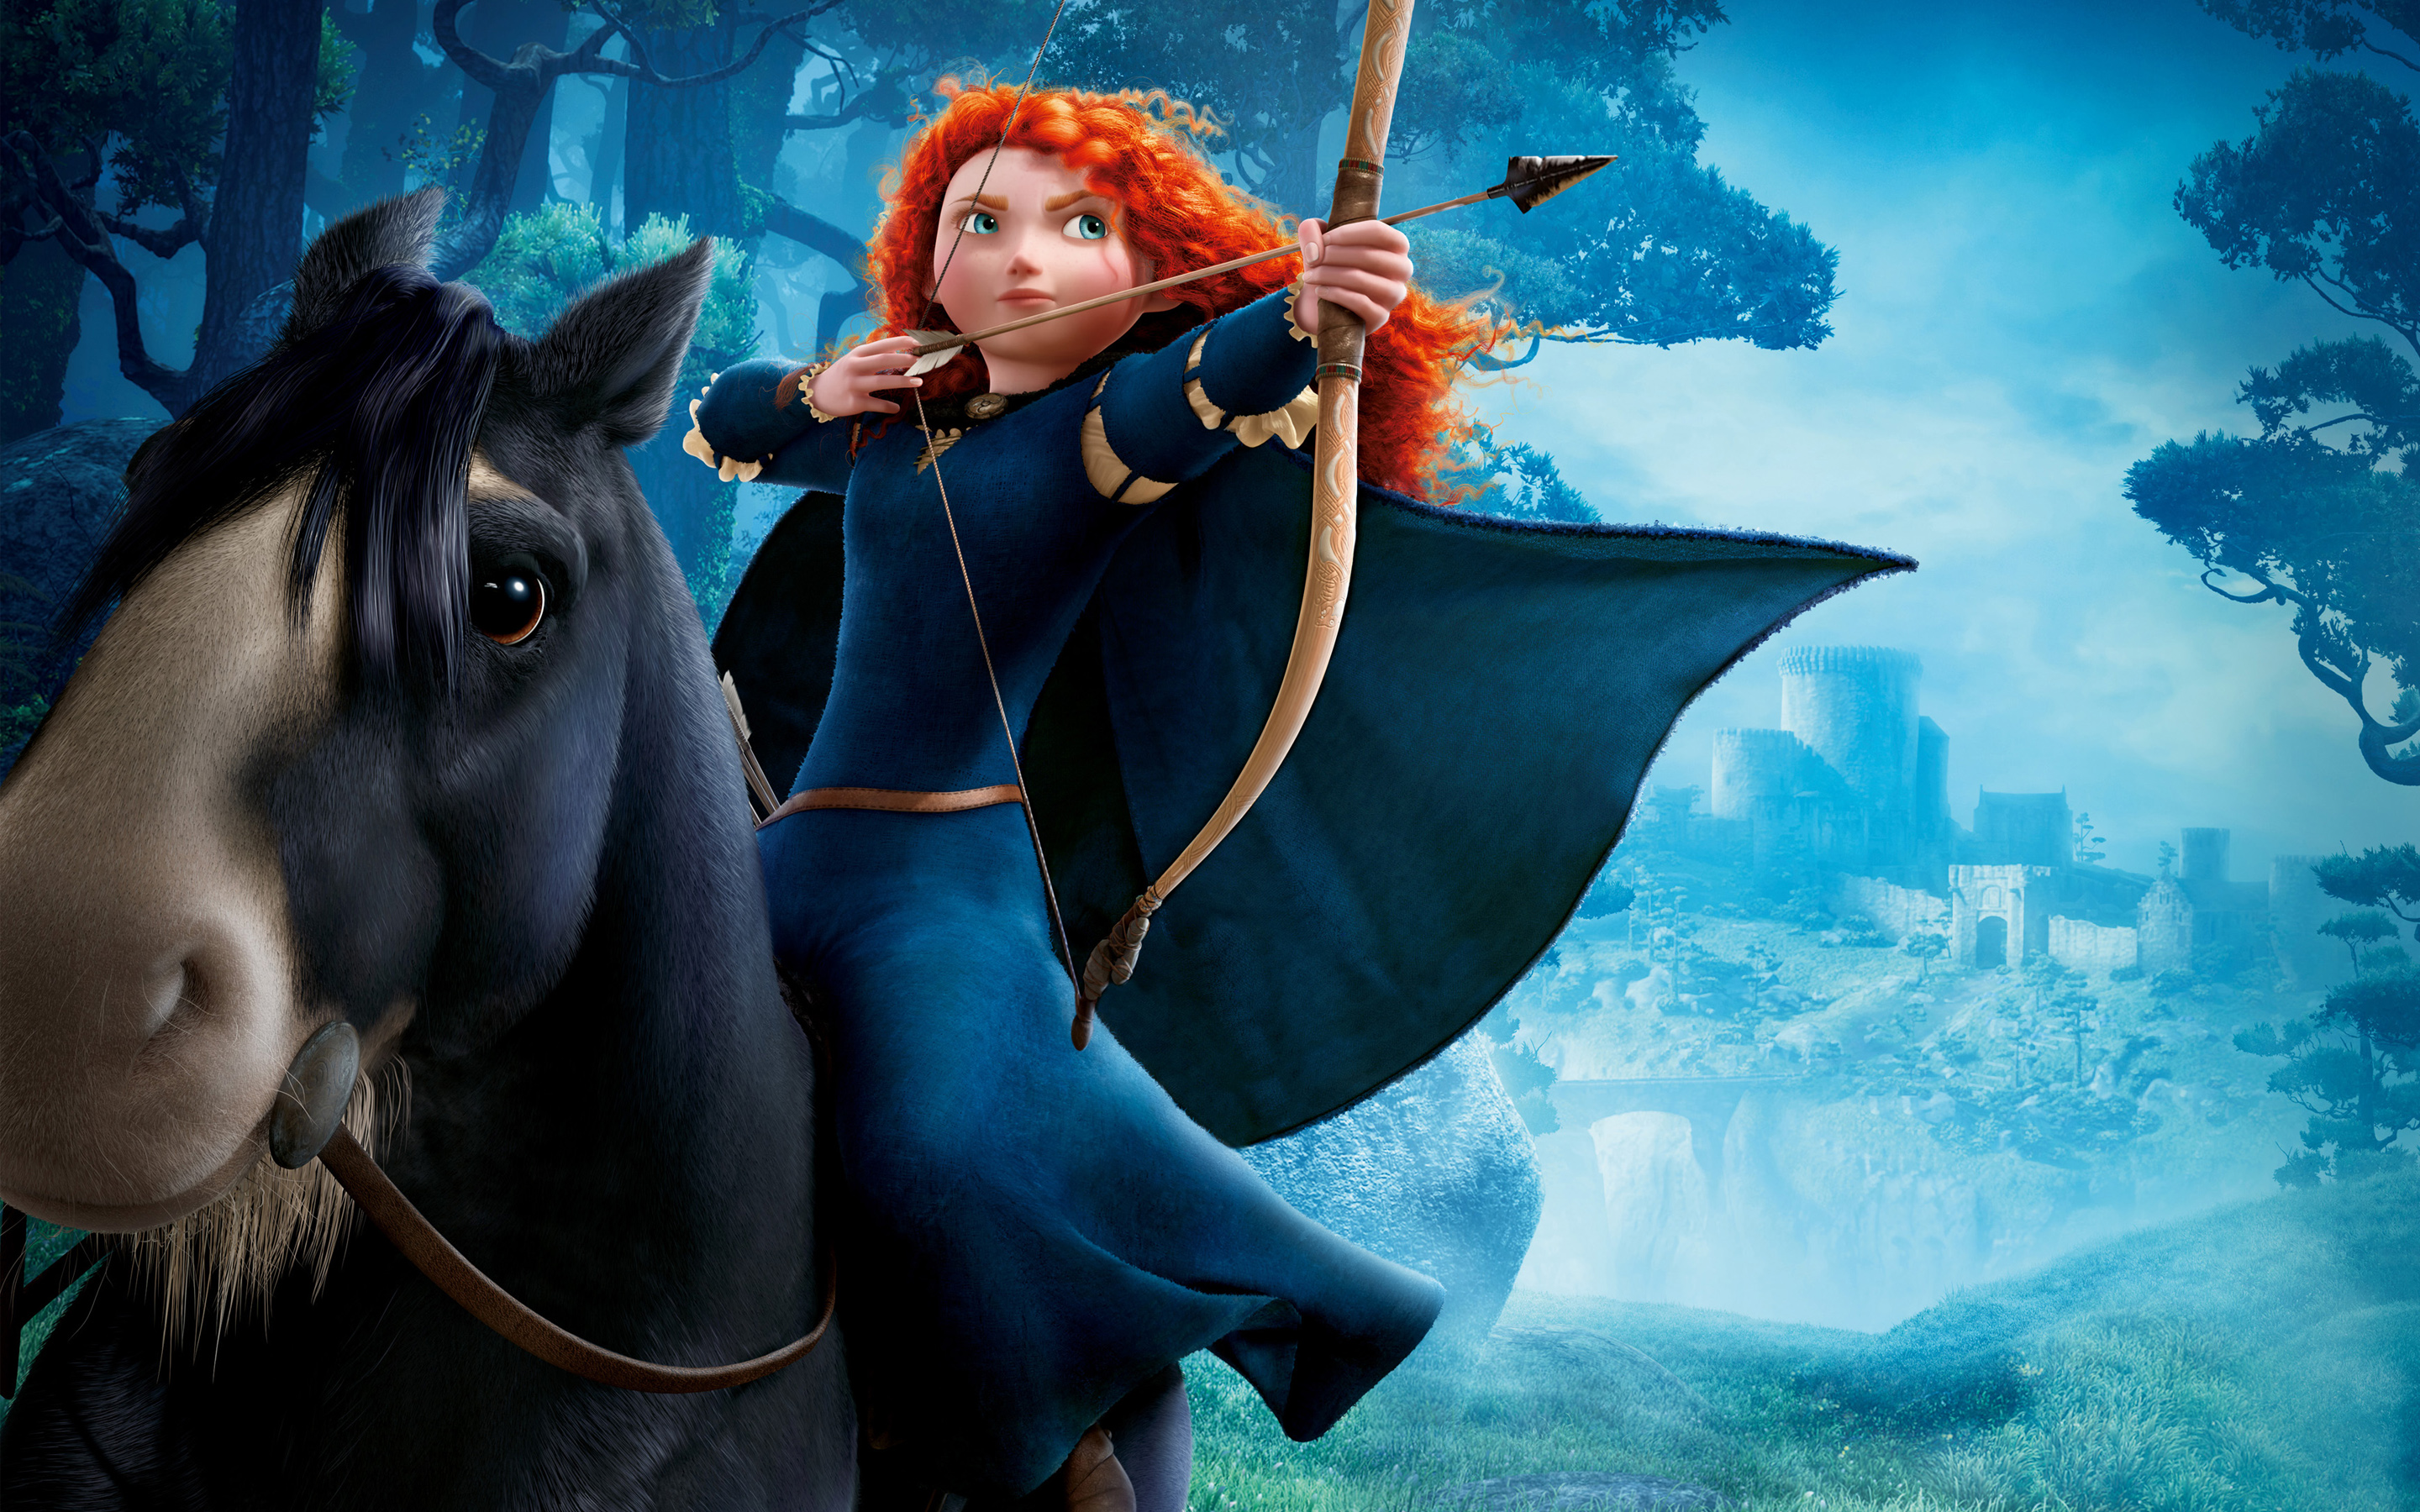 Princess Merida 460.12 Kb